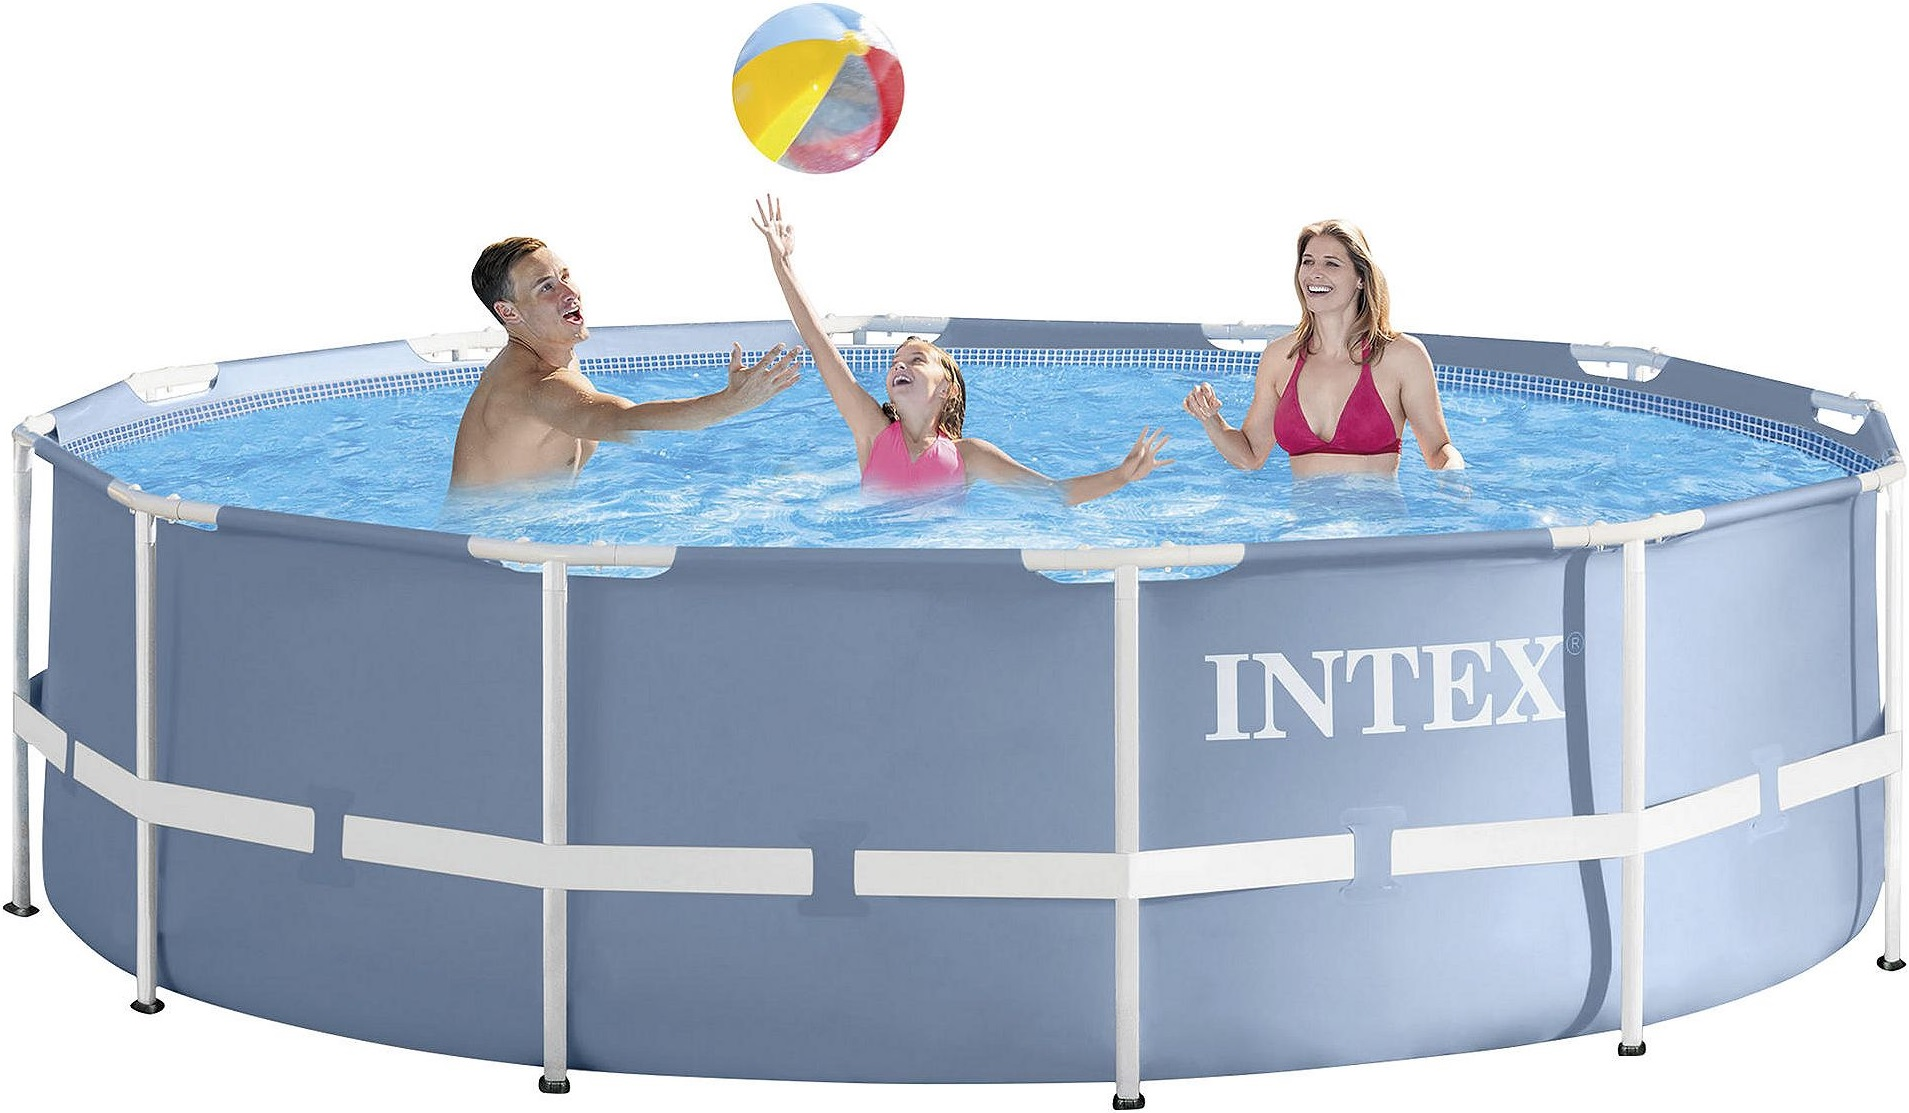 Intex Pool Frame Rund New Intex Metal Frame Round Pool With Ladder And Filter Pump